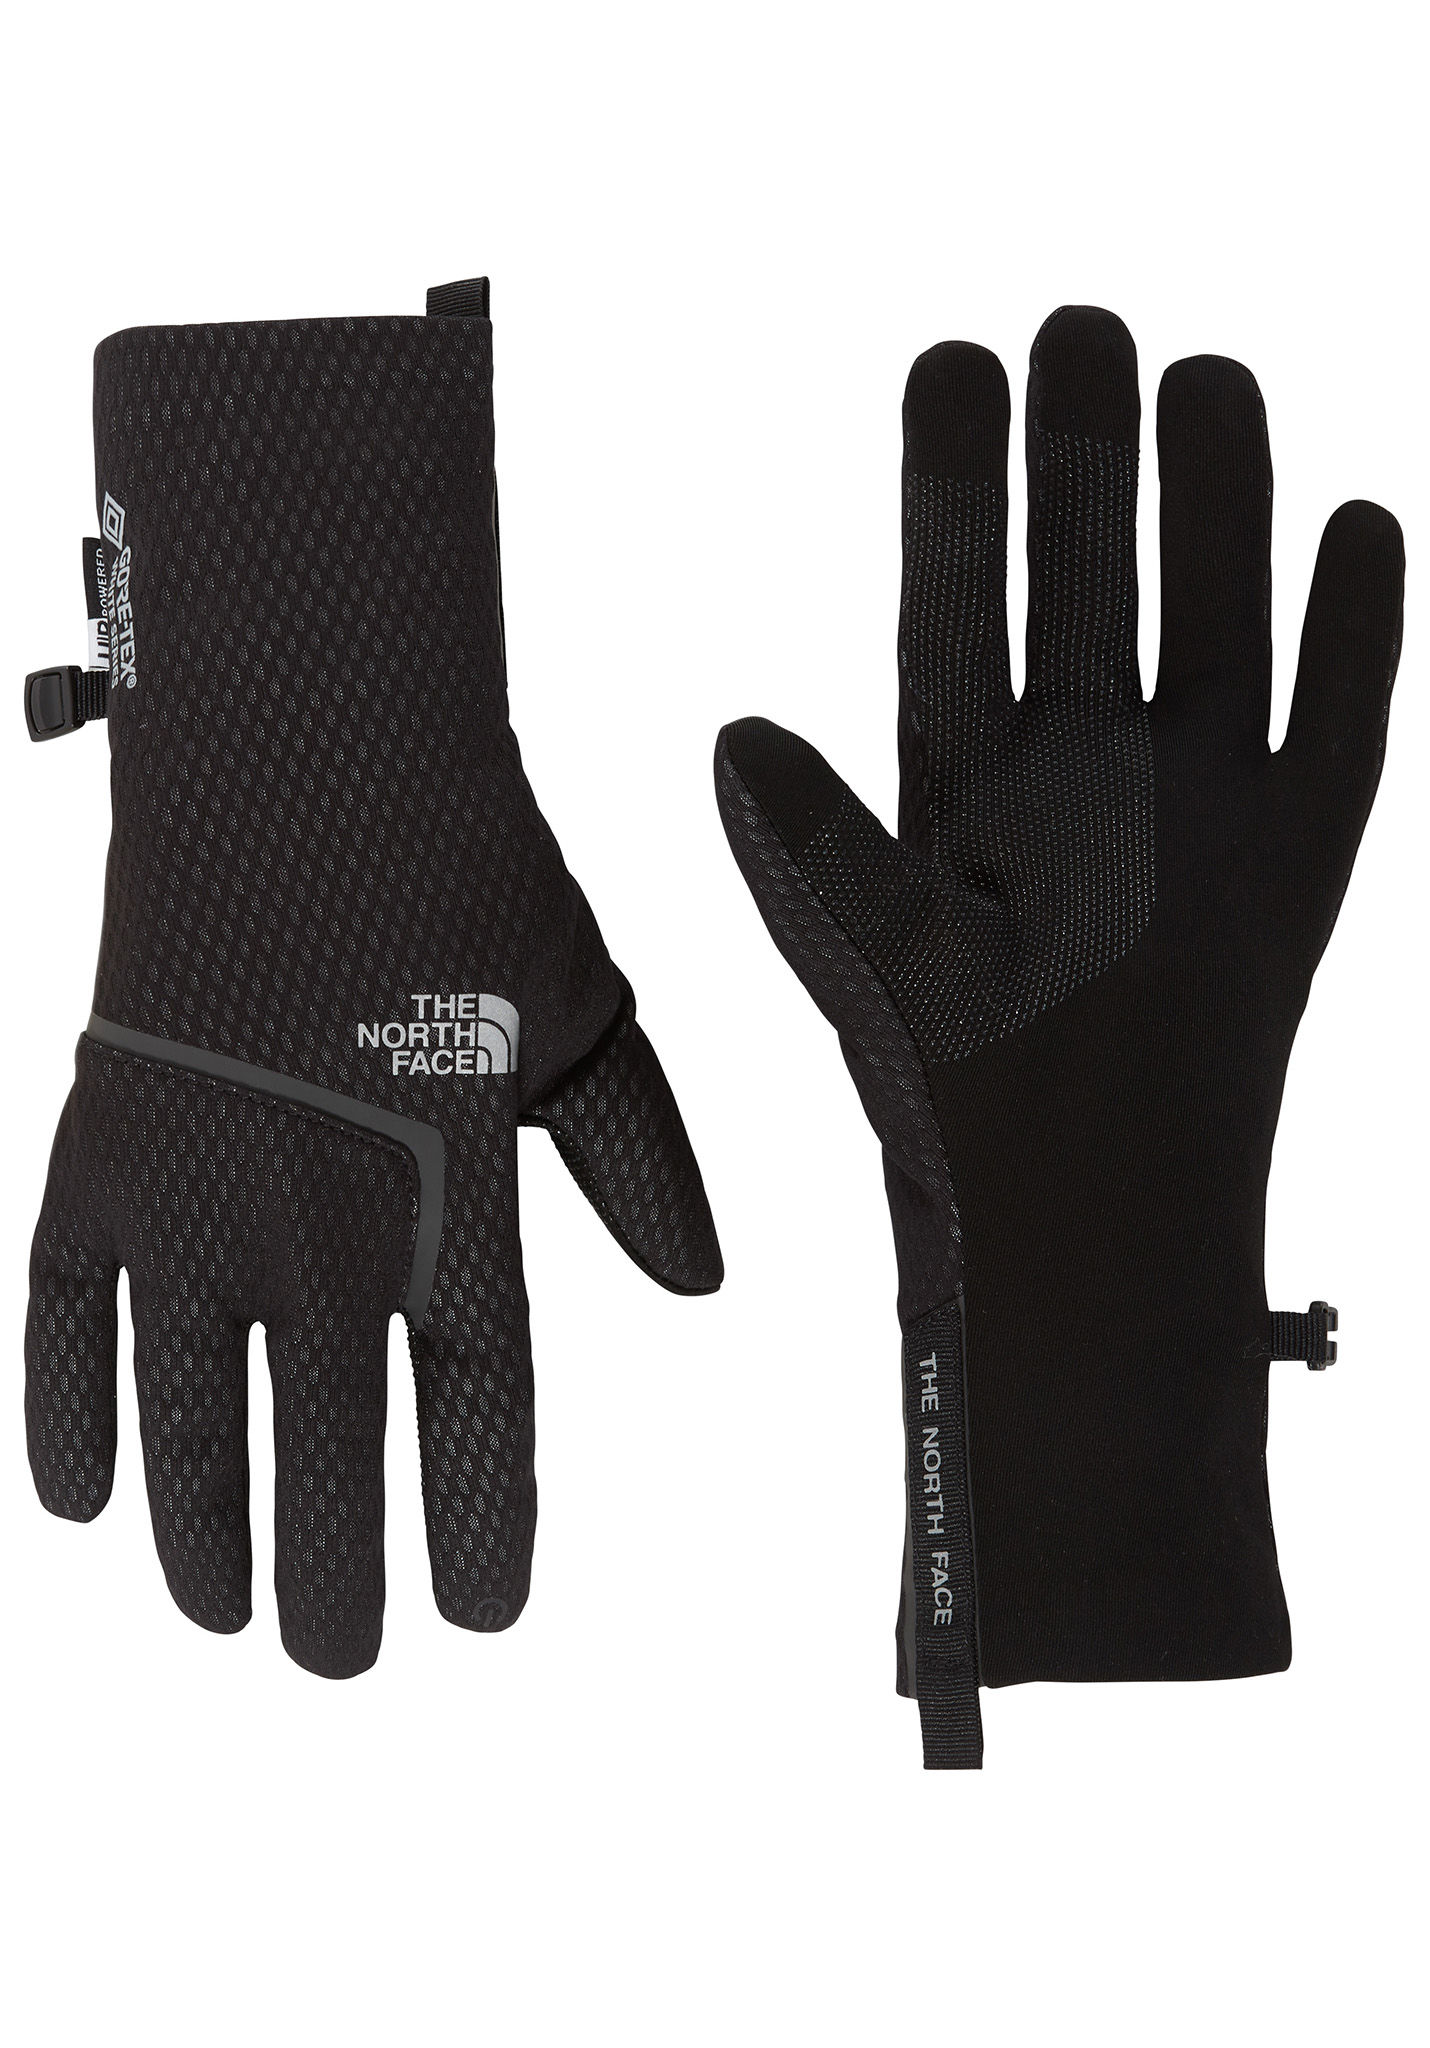 a3a5d64b4ad THE NORTH FACE Gore Closefit Tricot - Gloves for Women - Black - Planet  Sports